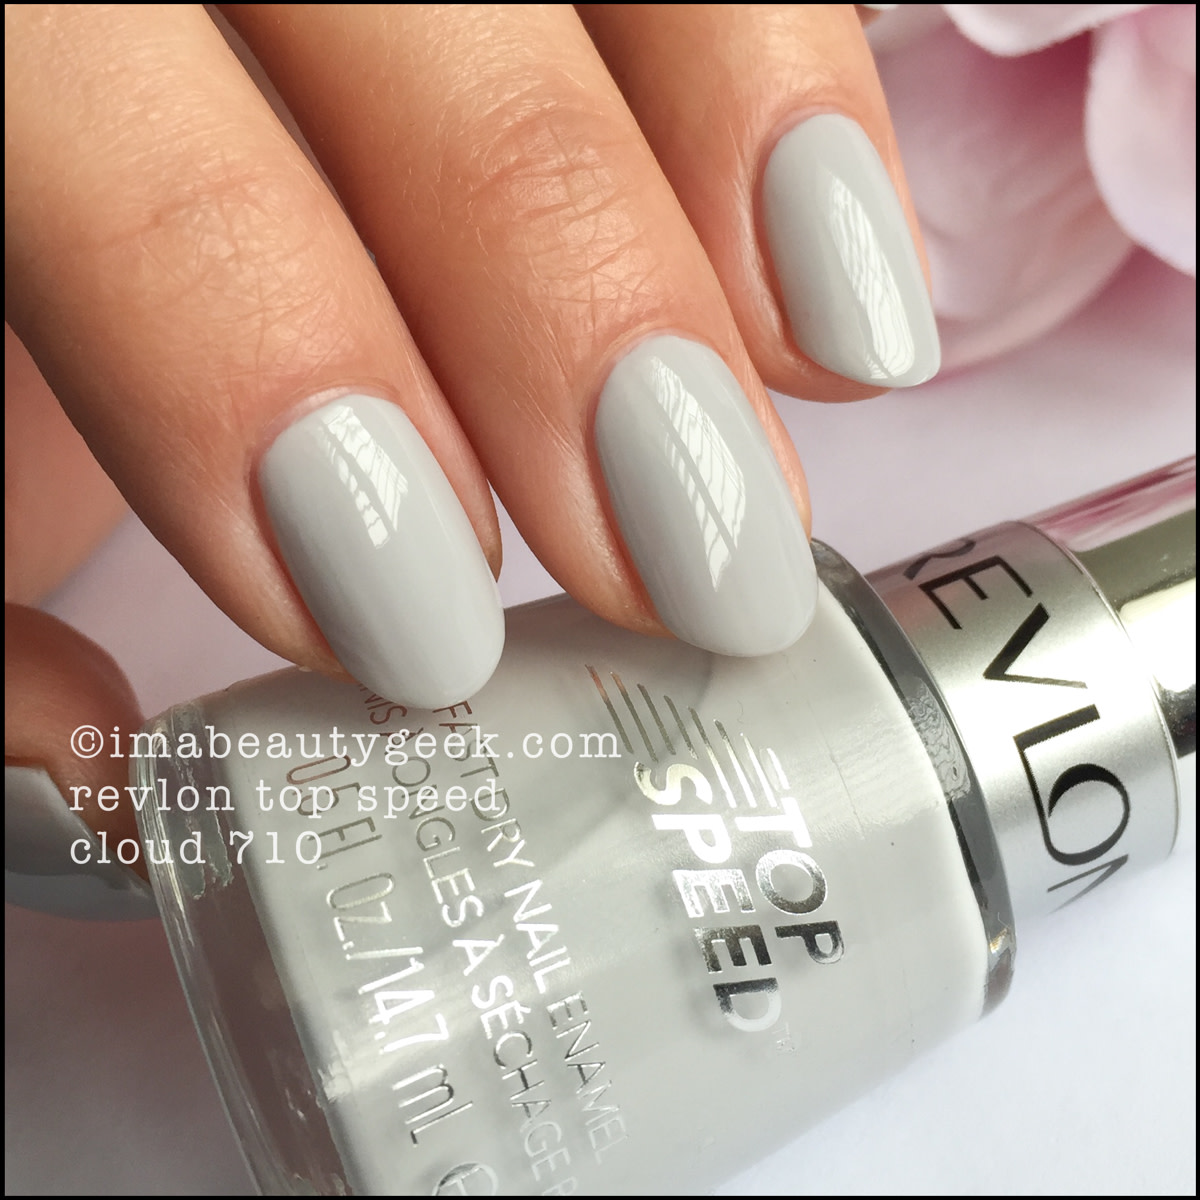 Revlon Nail Polish Cloud 710_Revlon Top Speed Cloud